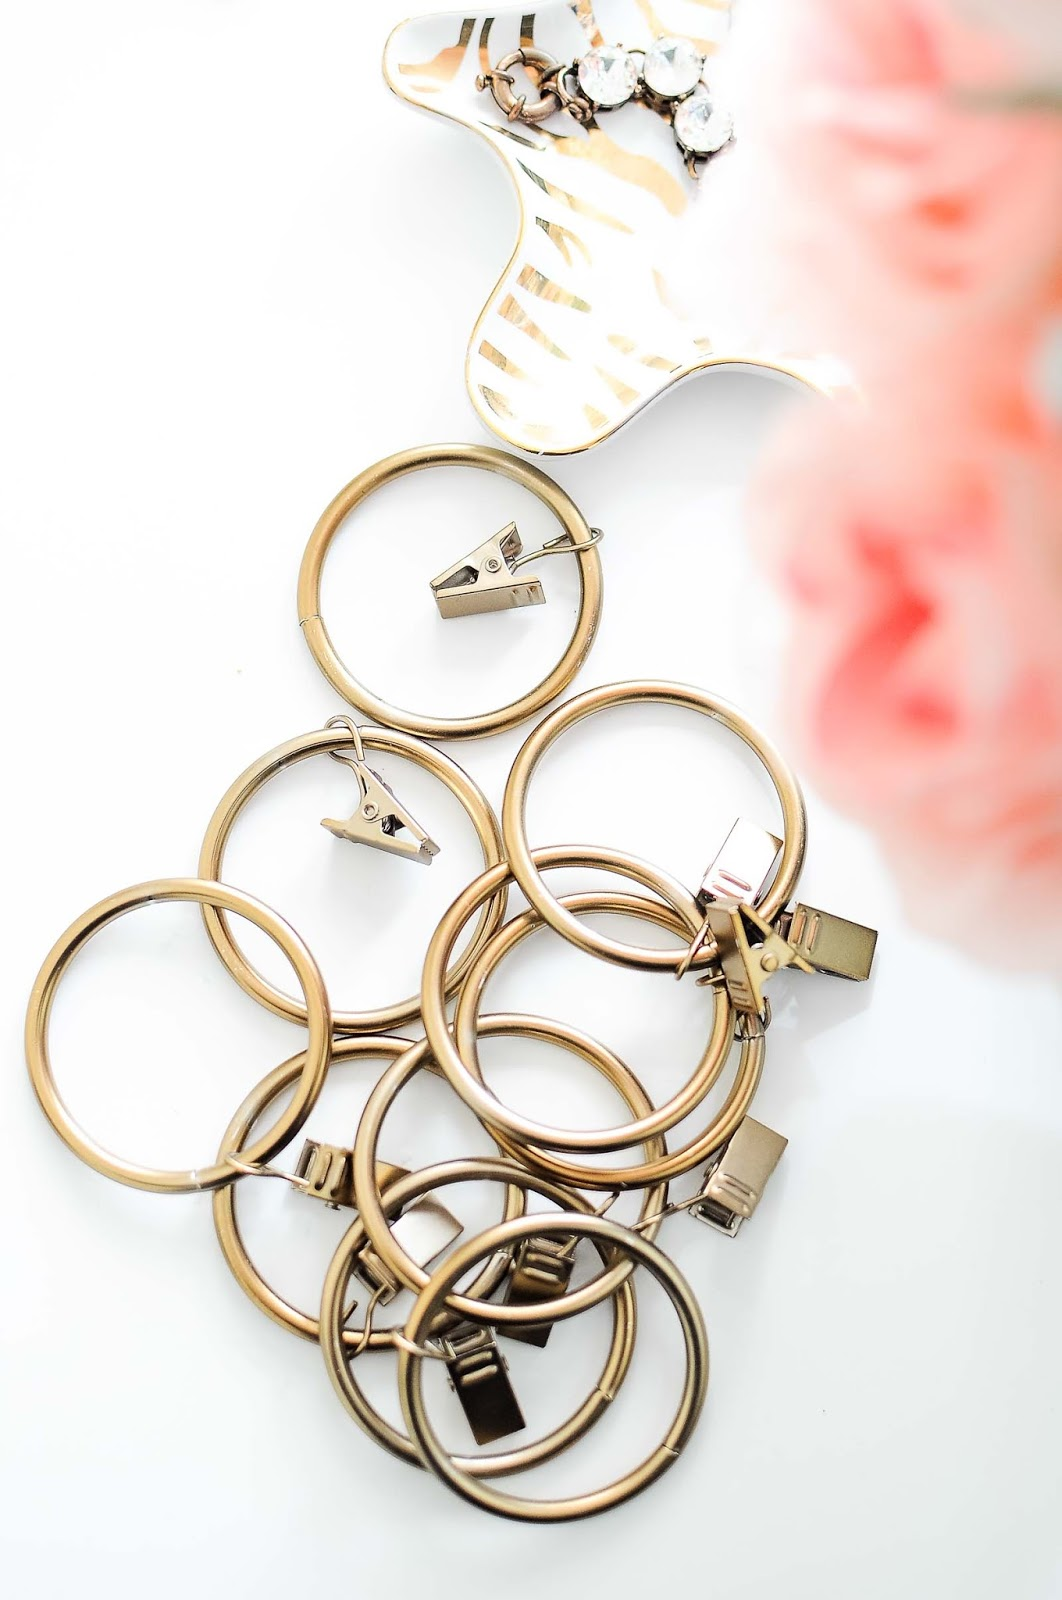 Affordable warm brass or gold curtain rings for large curtain rods.